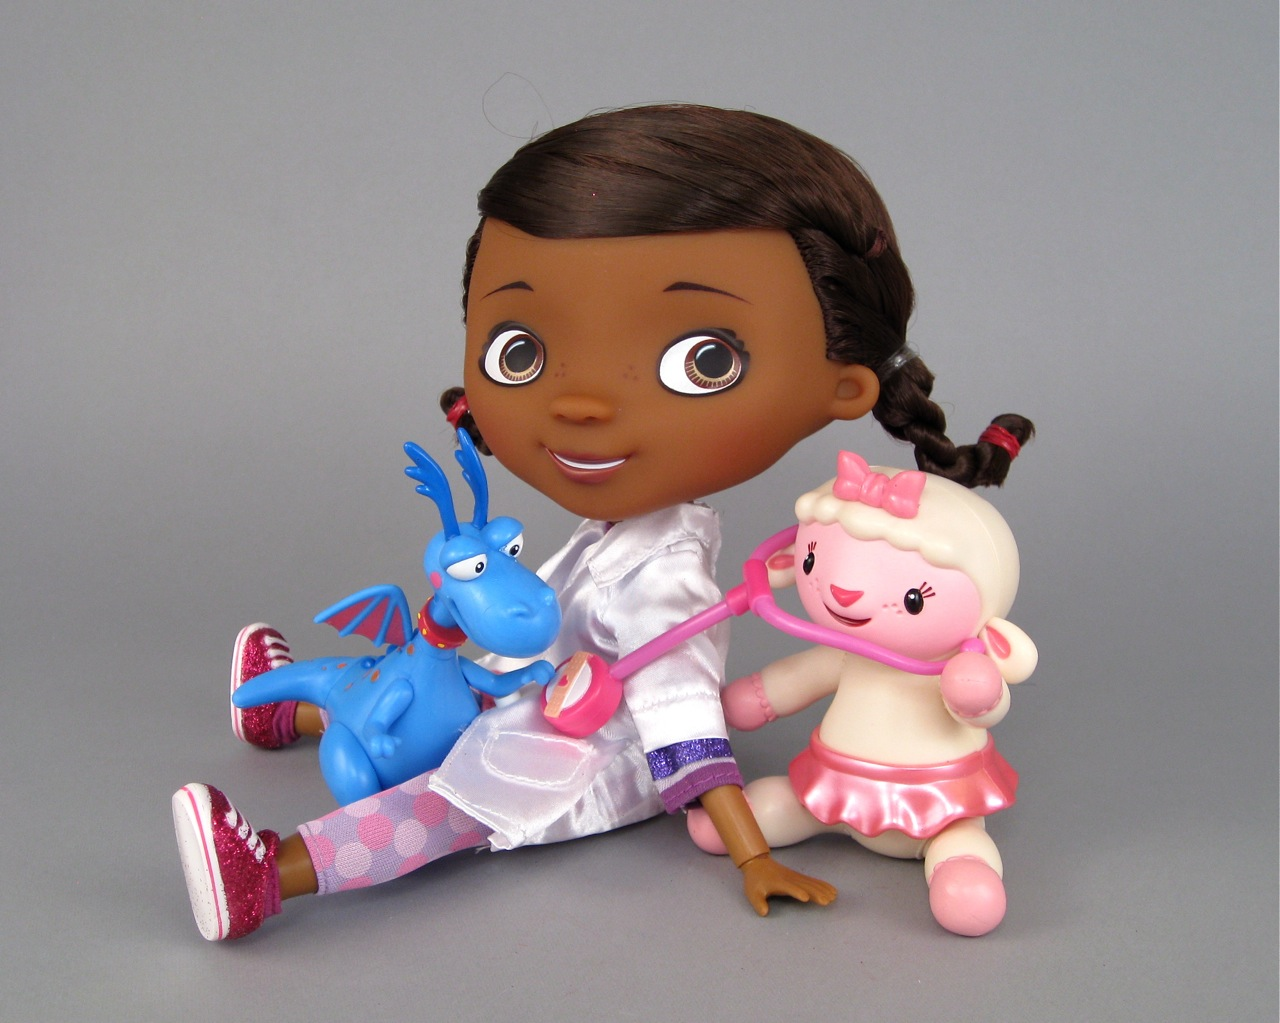 Doc McStuffins doll from Disney Store